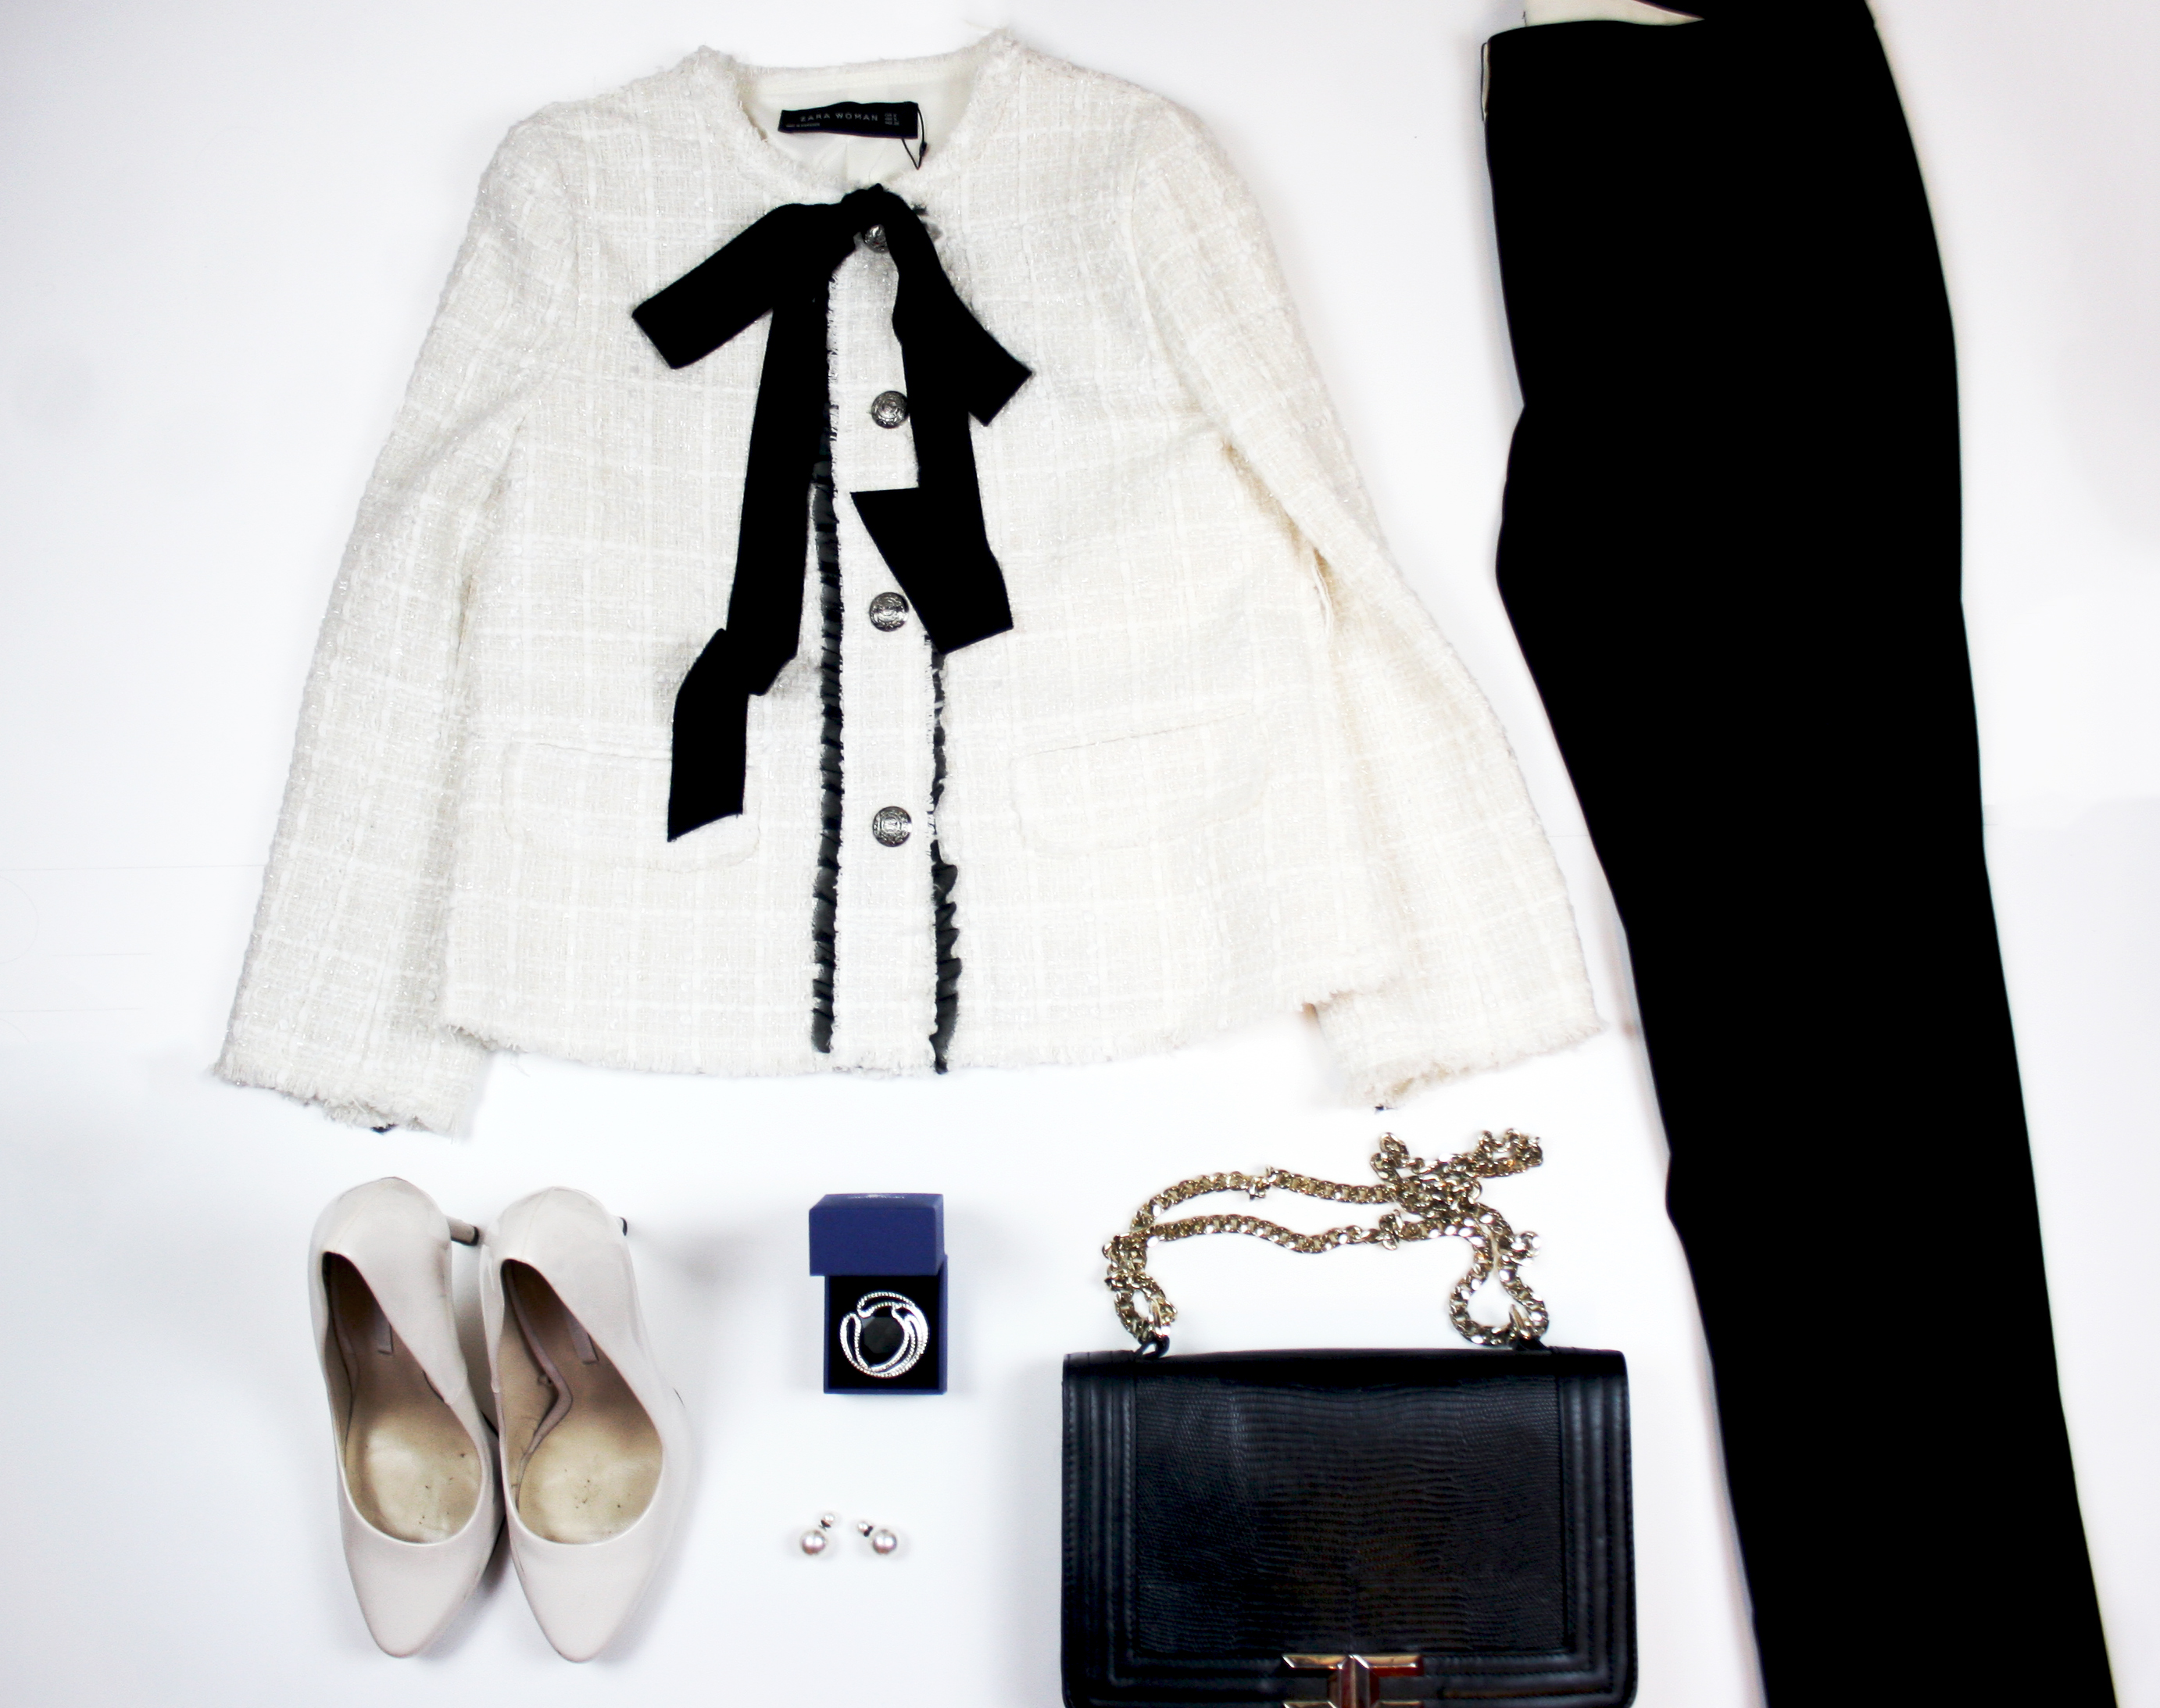 An elegant chic black and white look